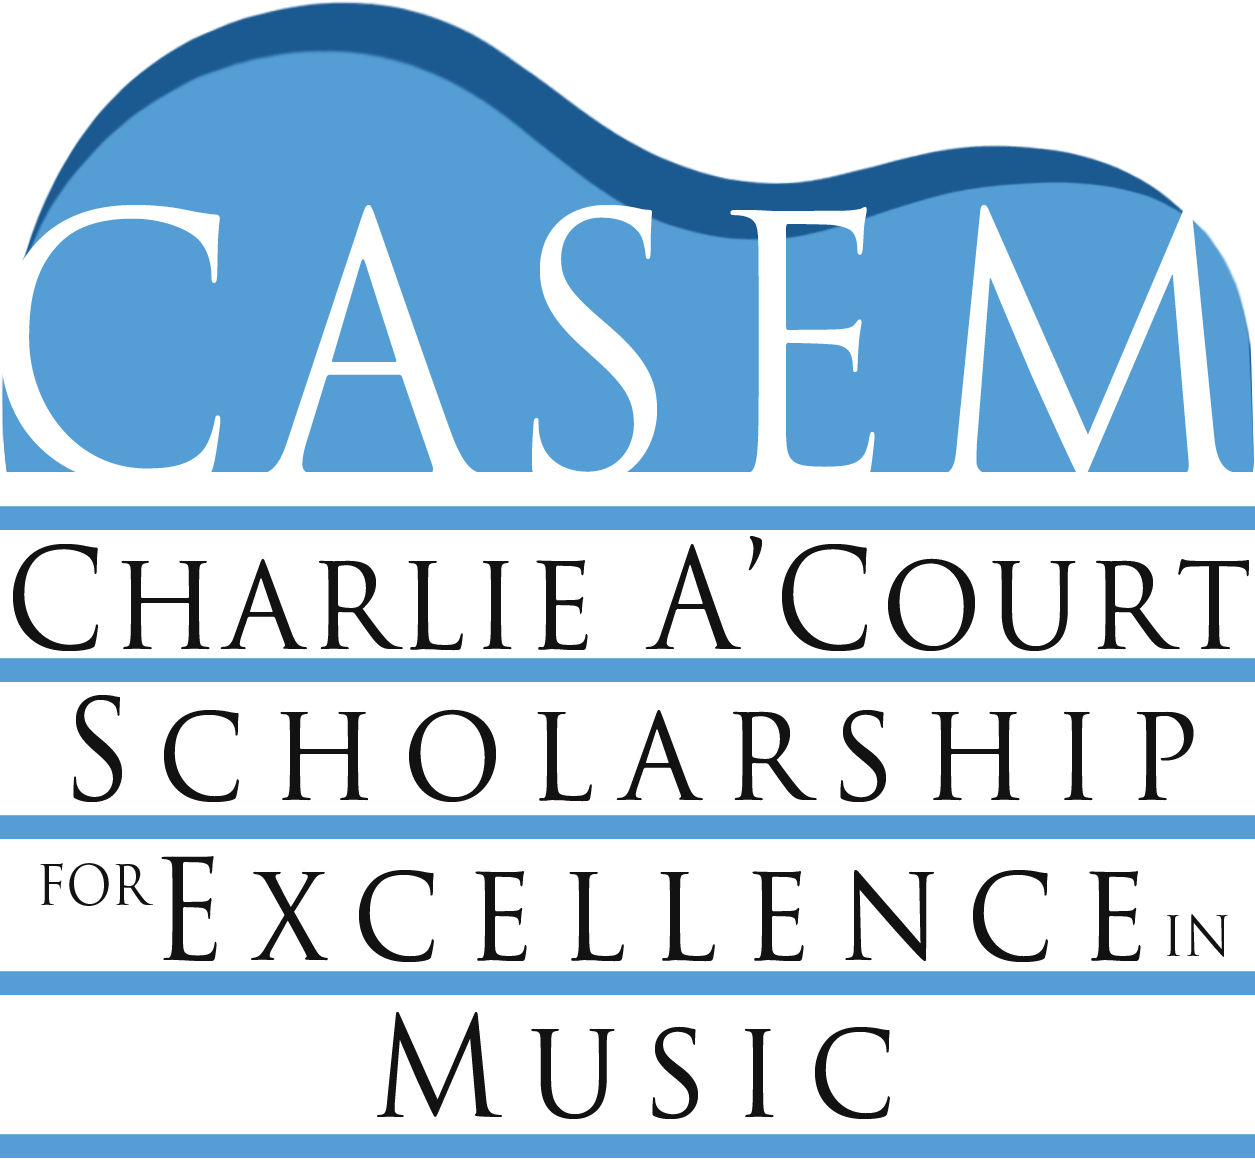 Charlie A'Court Scholarship for Excellence in Music